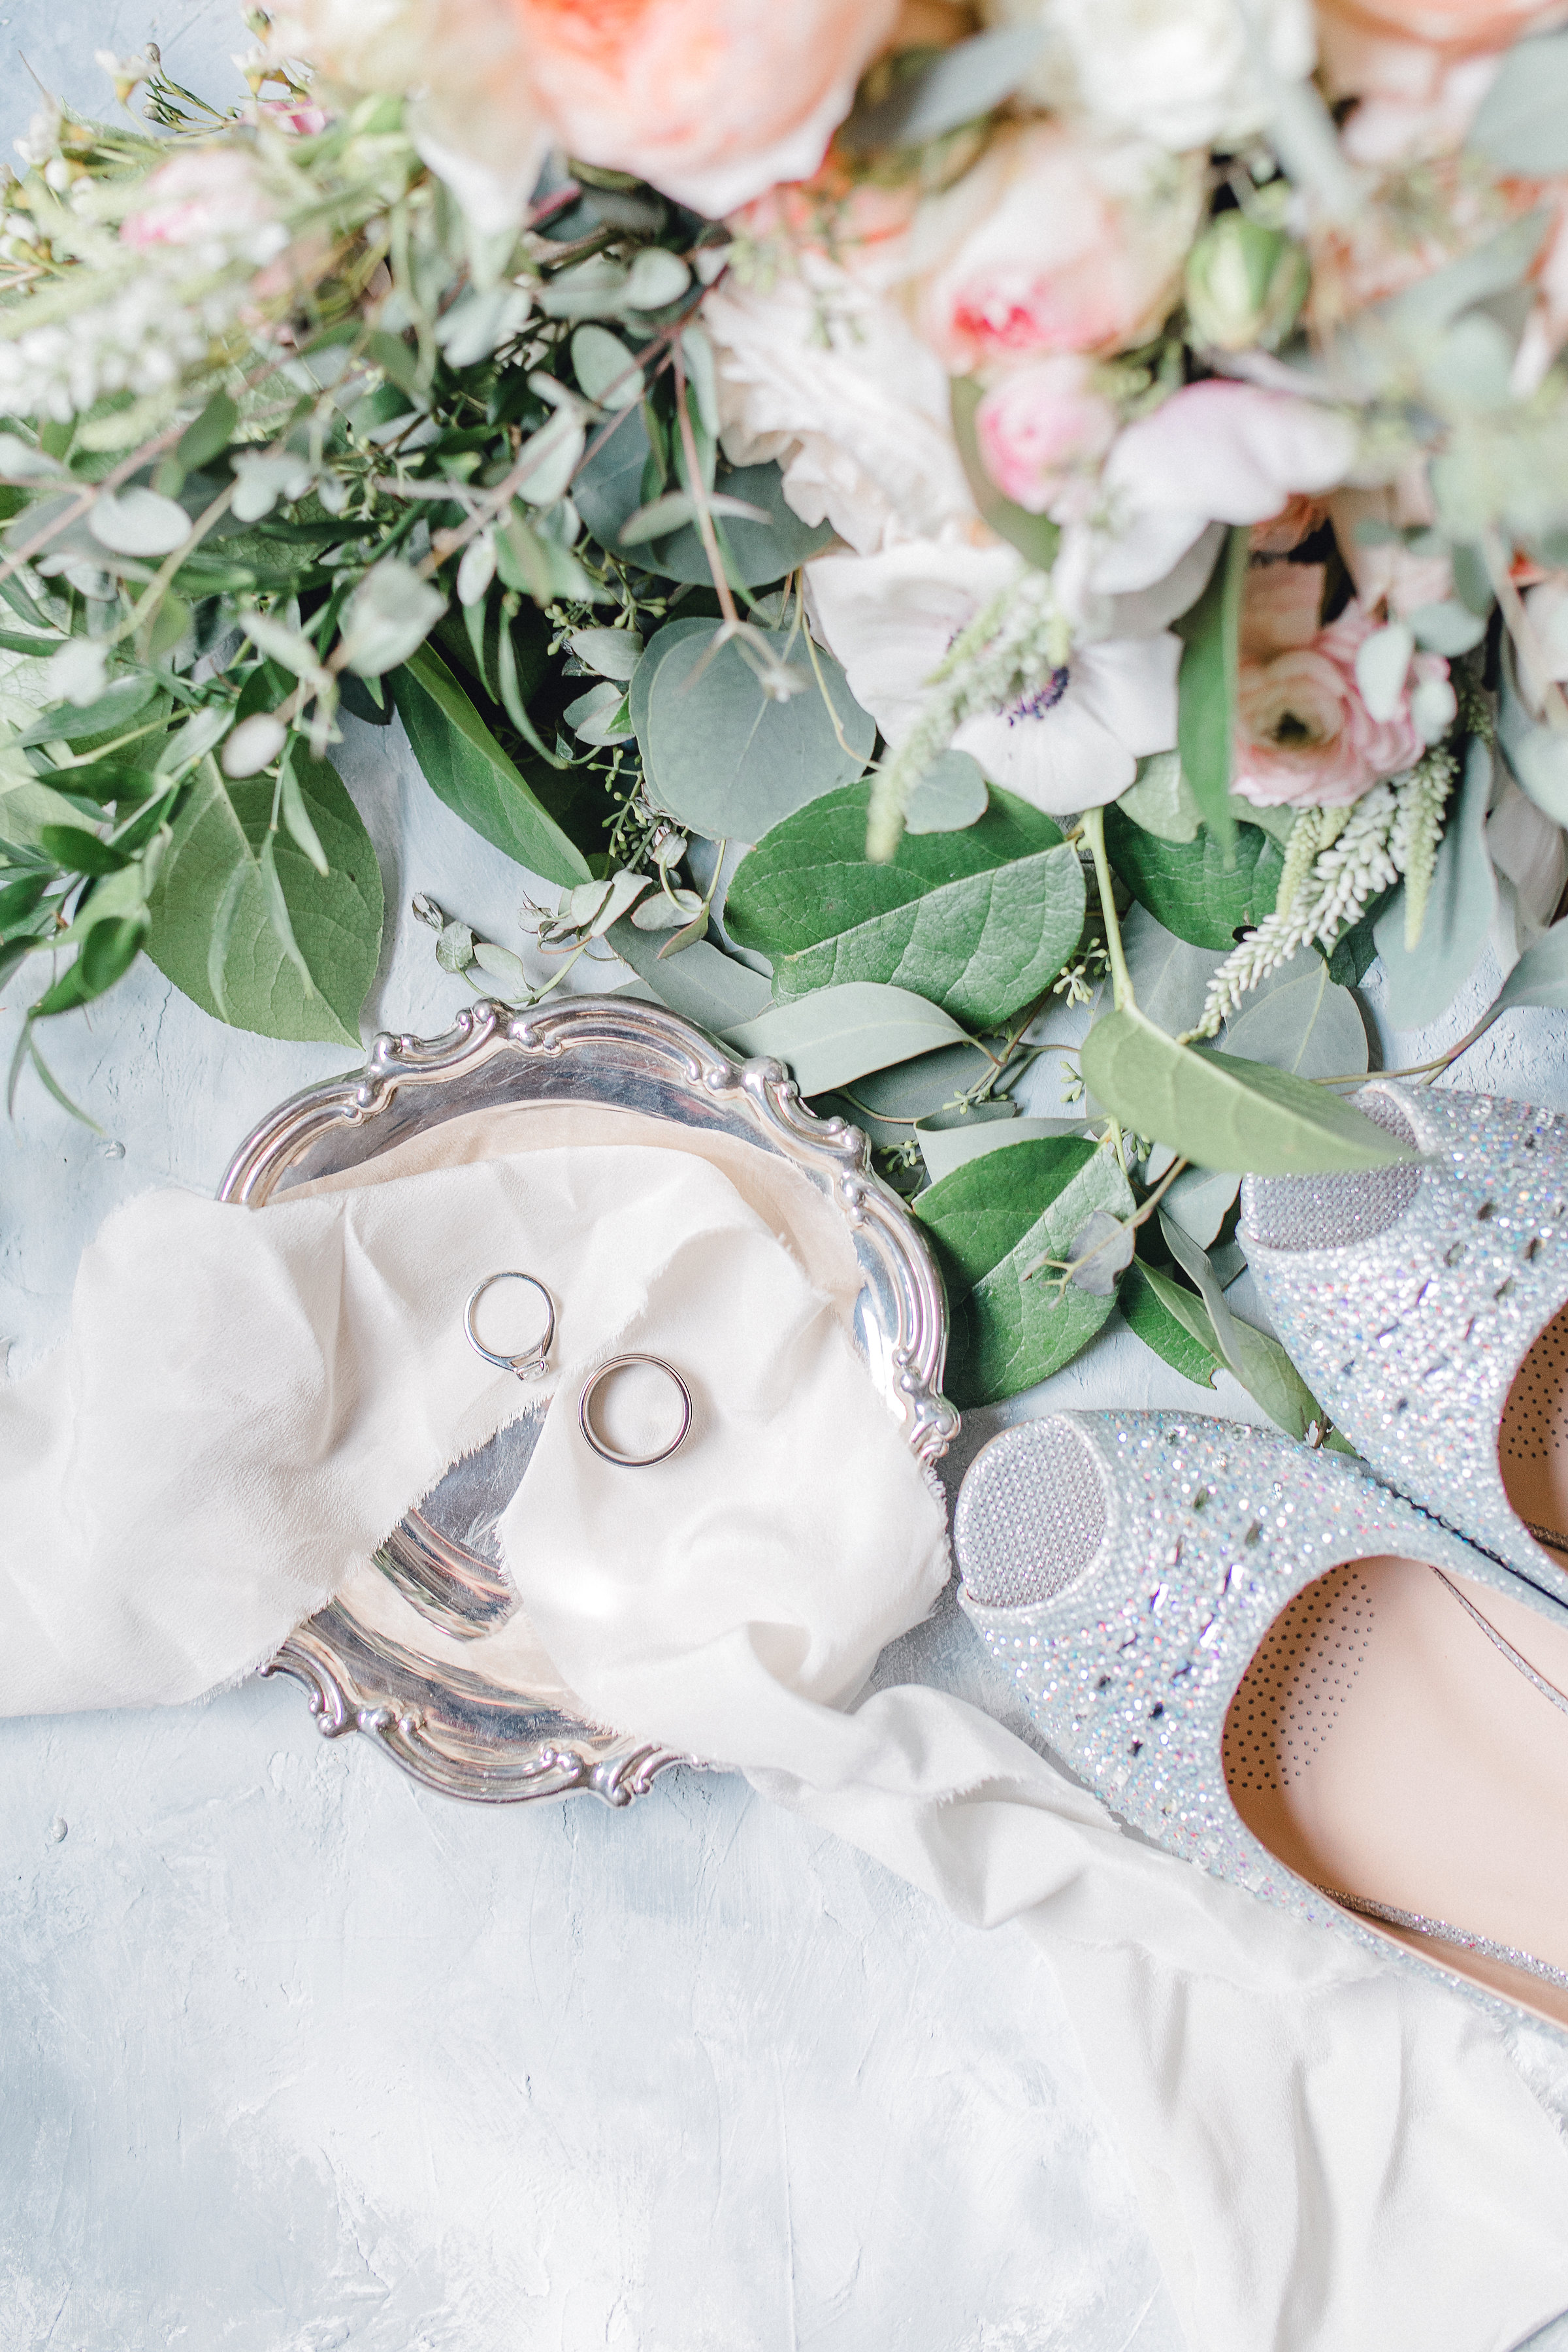 Seattle wedding, Washington wedding, bride and groom, PNW wedding, wedding inspiration, engagement ring, wedding ring, wedding flowers, Seattle bride, wedding bouquet, wedding shoes